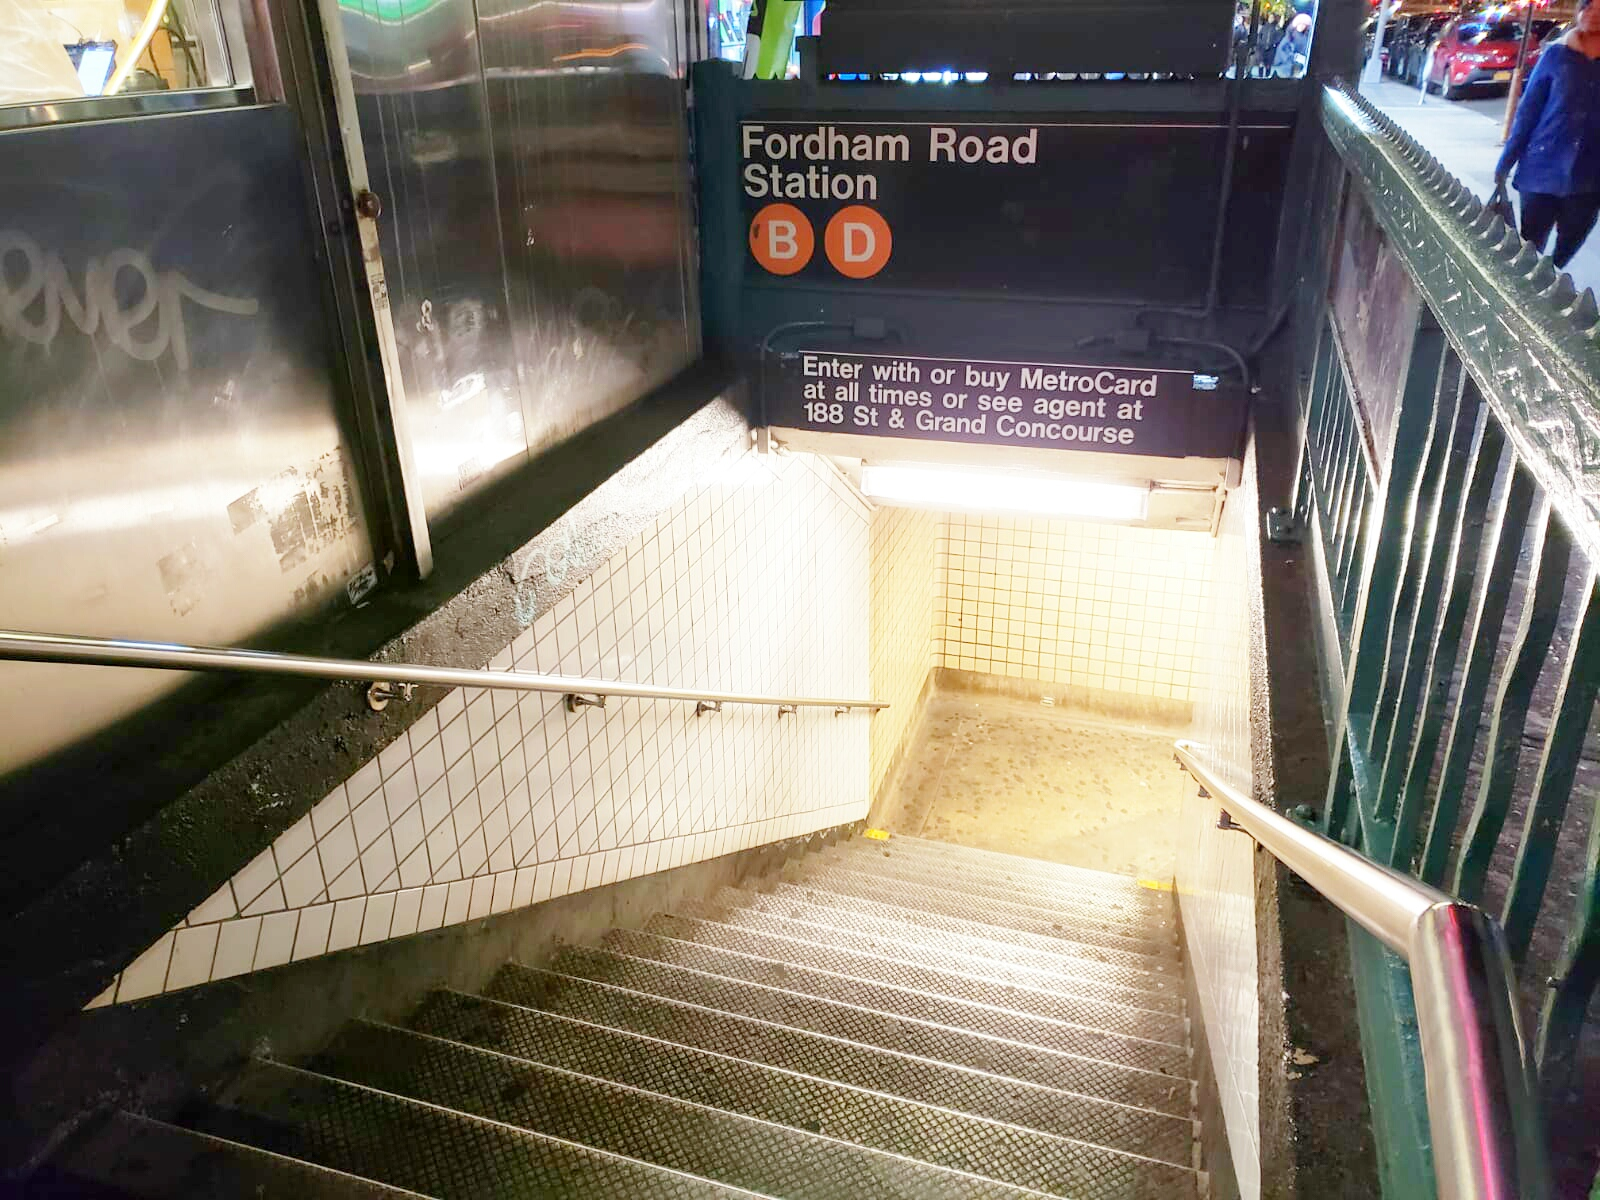 Fordham Road D train subway station where a man was attacked with a hammer and an 11-year-old boy was robbed his phone. The D train also stops at Bedford Park Boulevard, which is connected to Lehman. Both incidents were reported by NBC News Channel 4. Photo by Perla Tolentino.